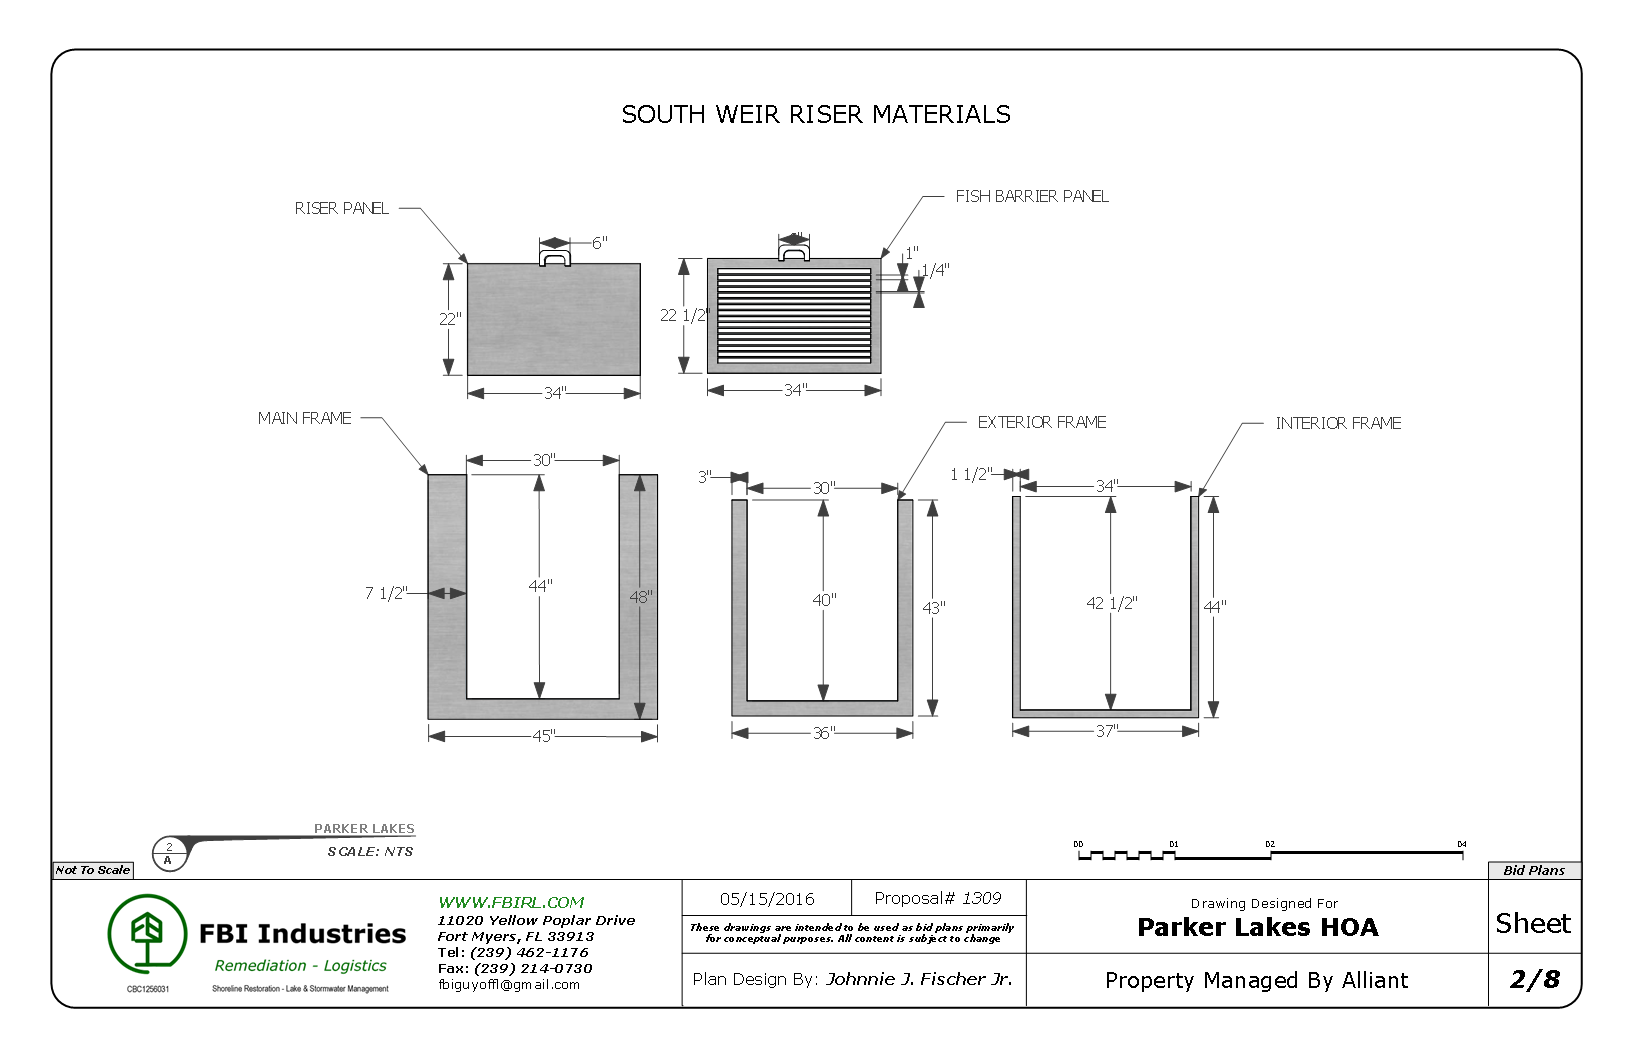 Proposal#1309_Parker Lakes Weir Presentation_Photos_2.png